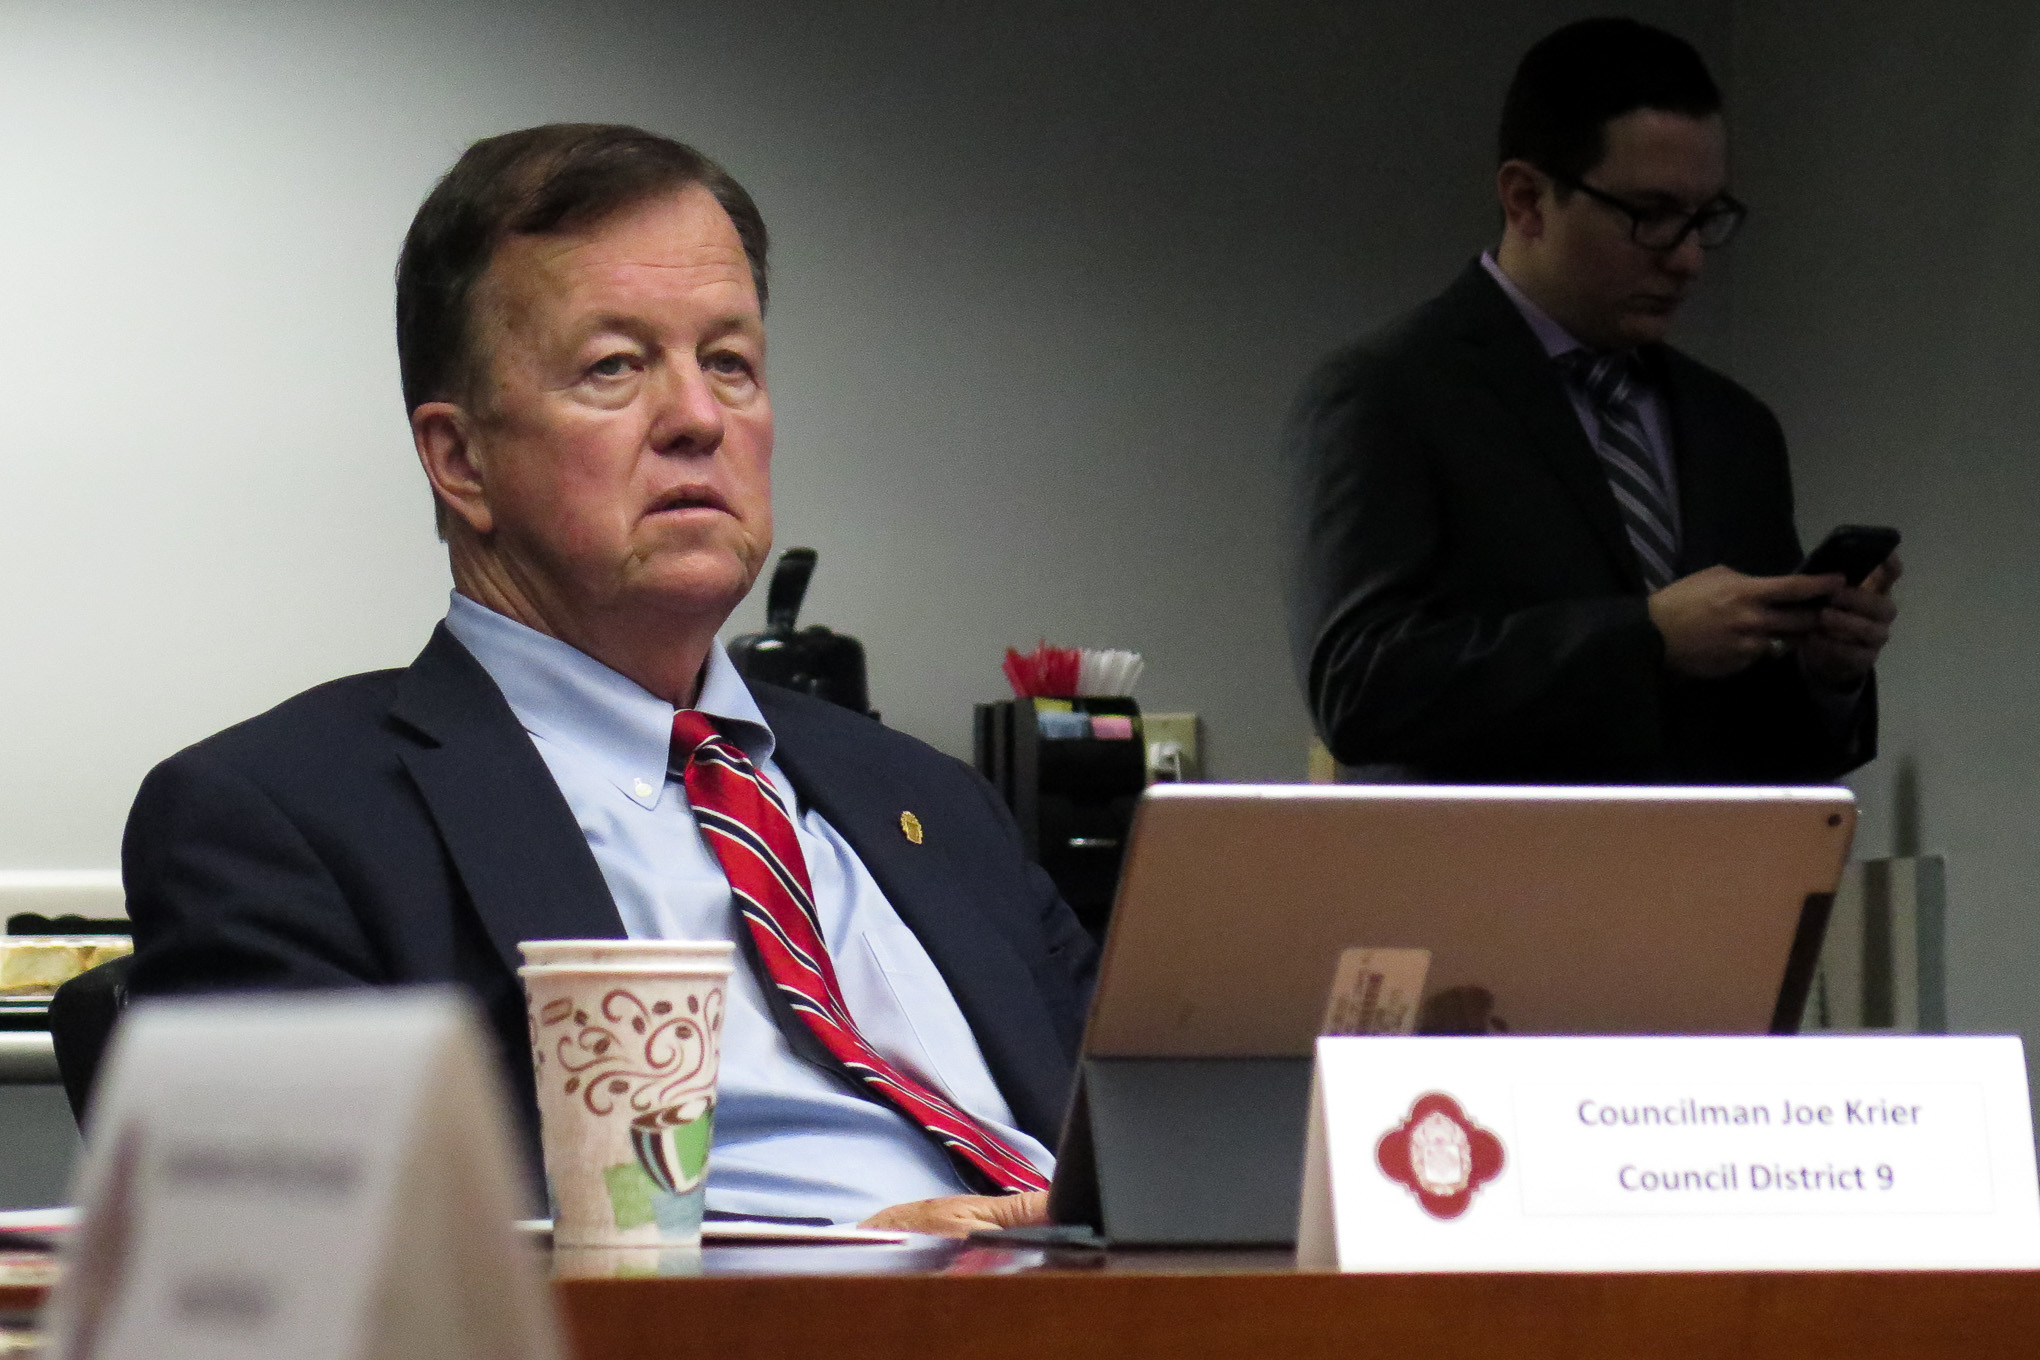 Councilman Joe Krier (D9) listens to a presentation about SAWS initiatives during a Transportation, Technology and Utilities Committee meeting.